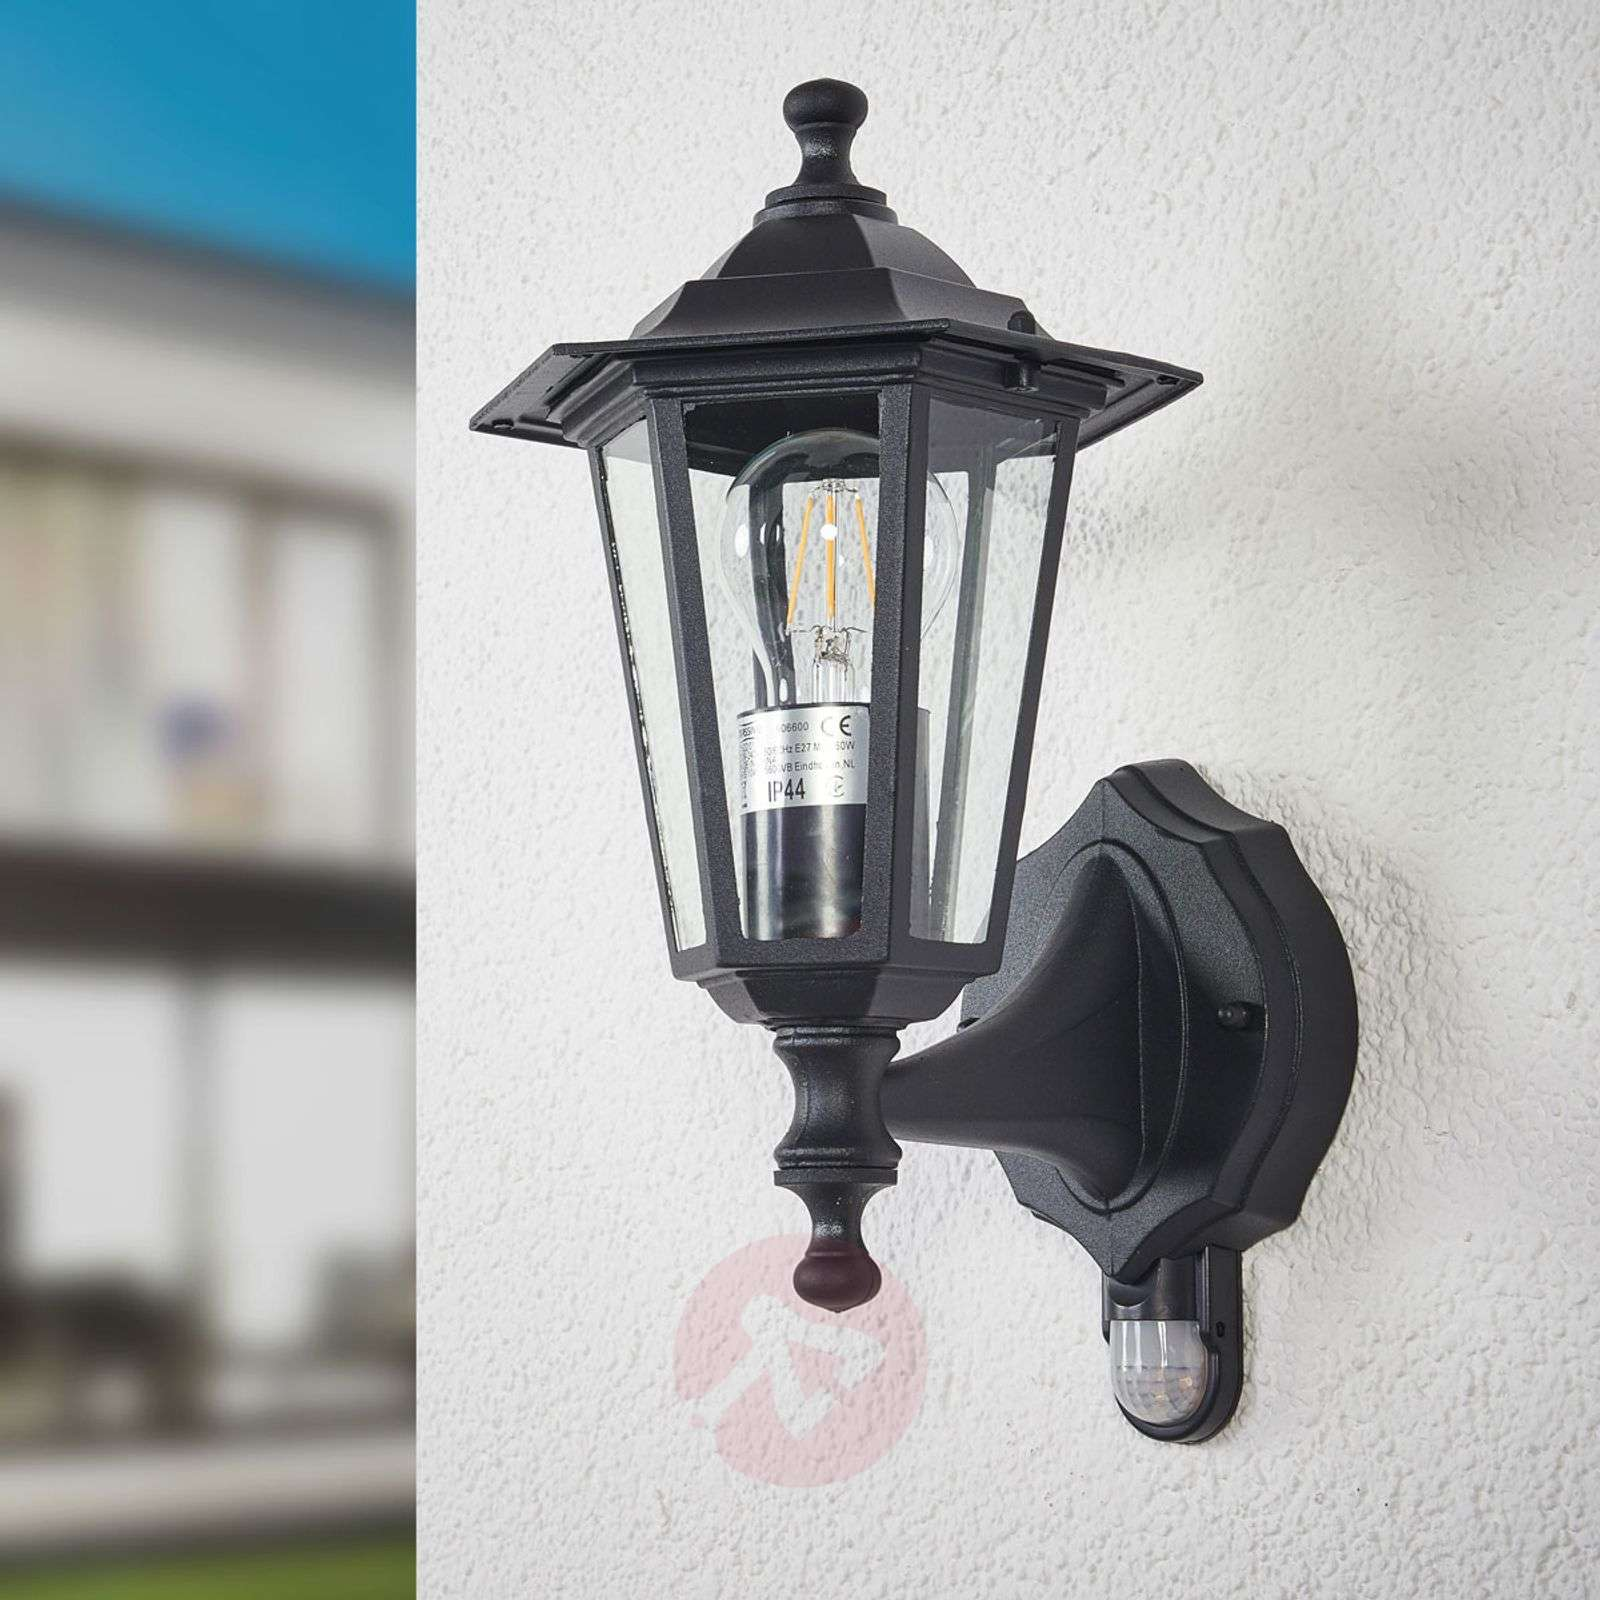 Infrared outdoor light PEKING black-6500209-02